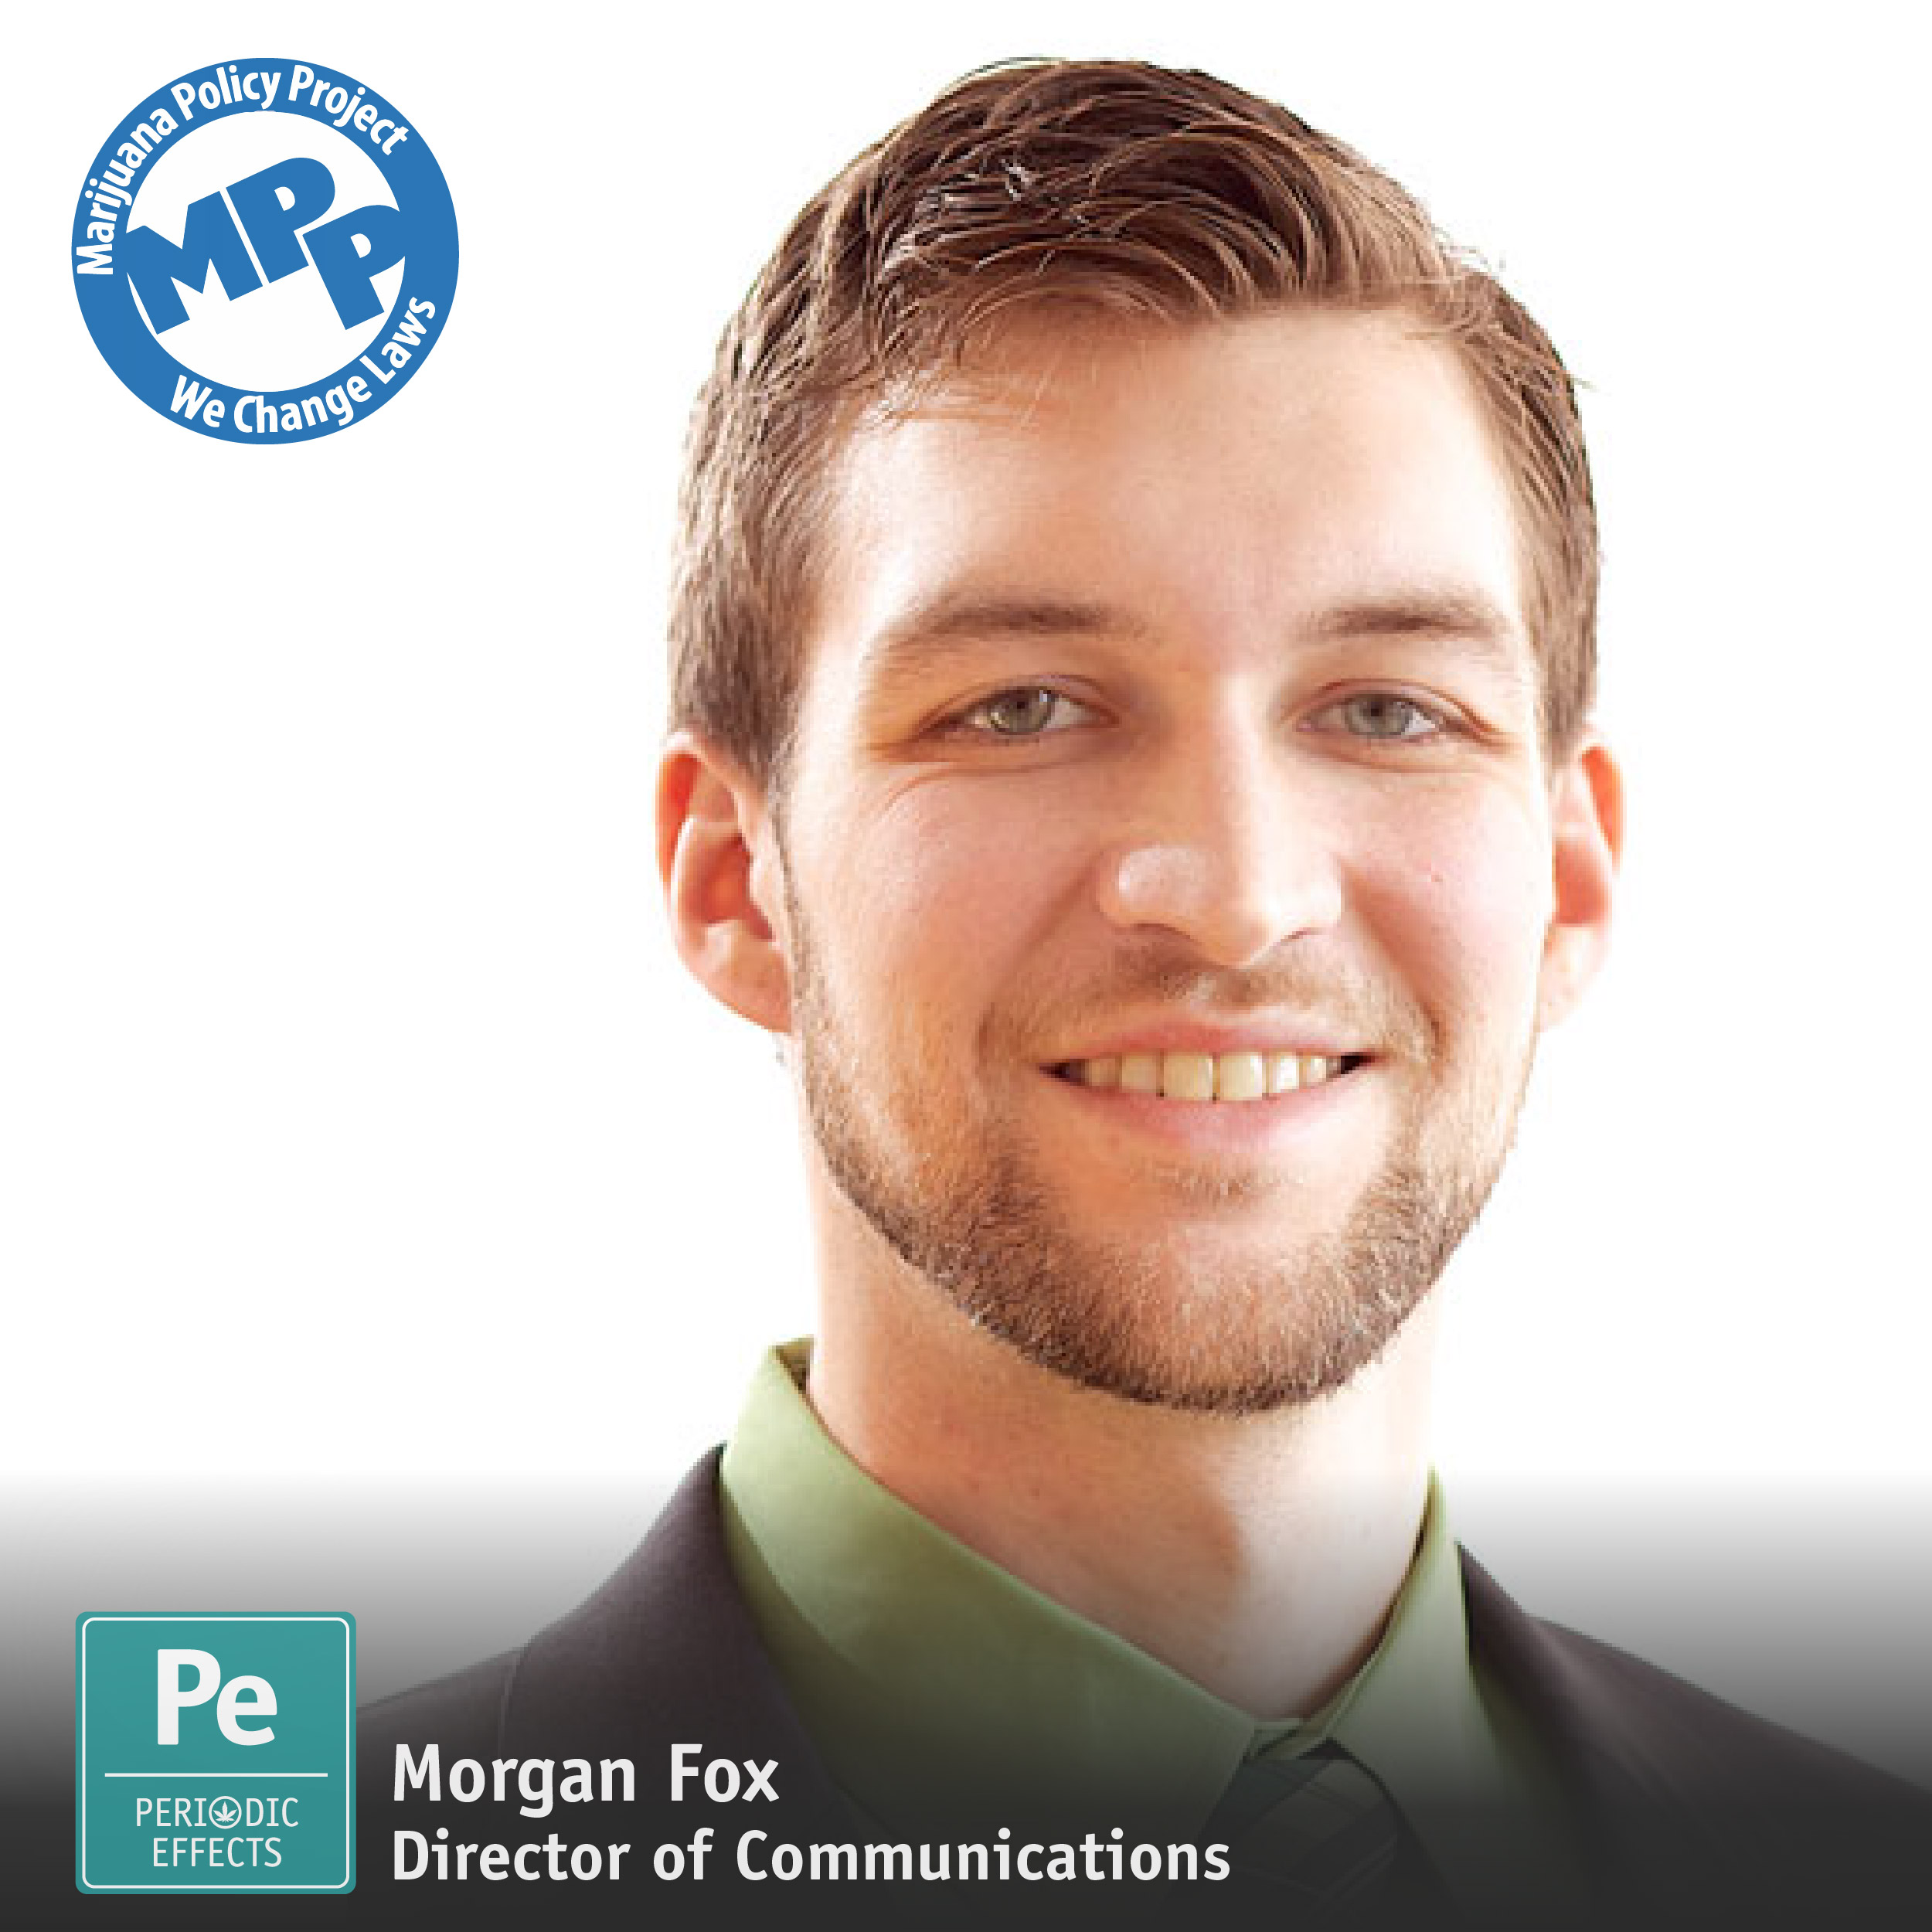 Morgan Fox Director of Communications Marijuana Policy Project